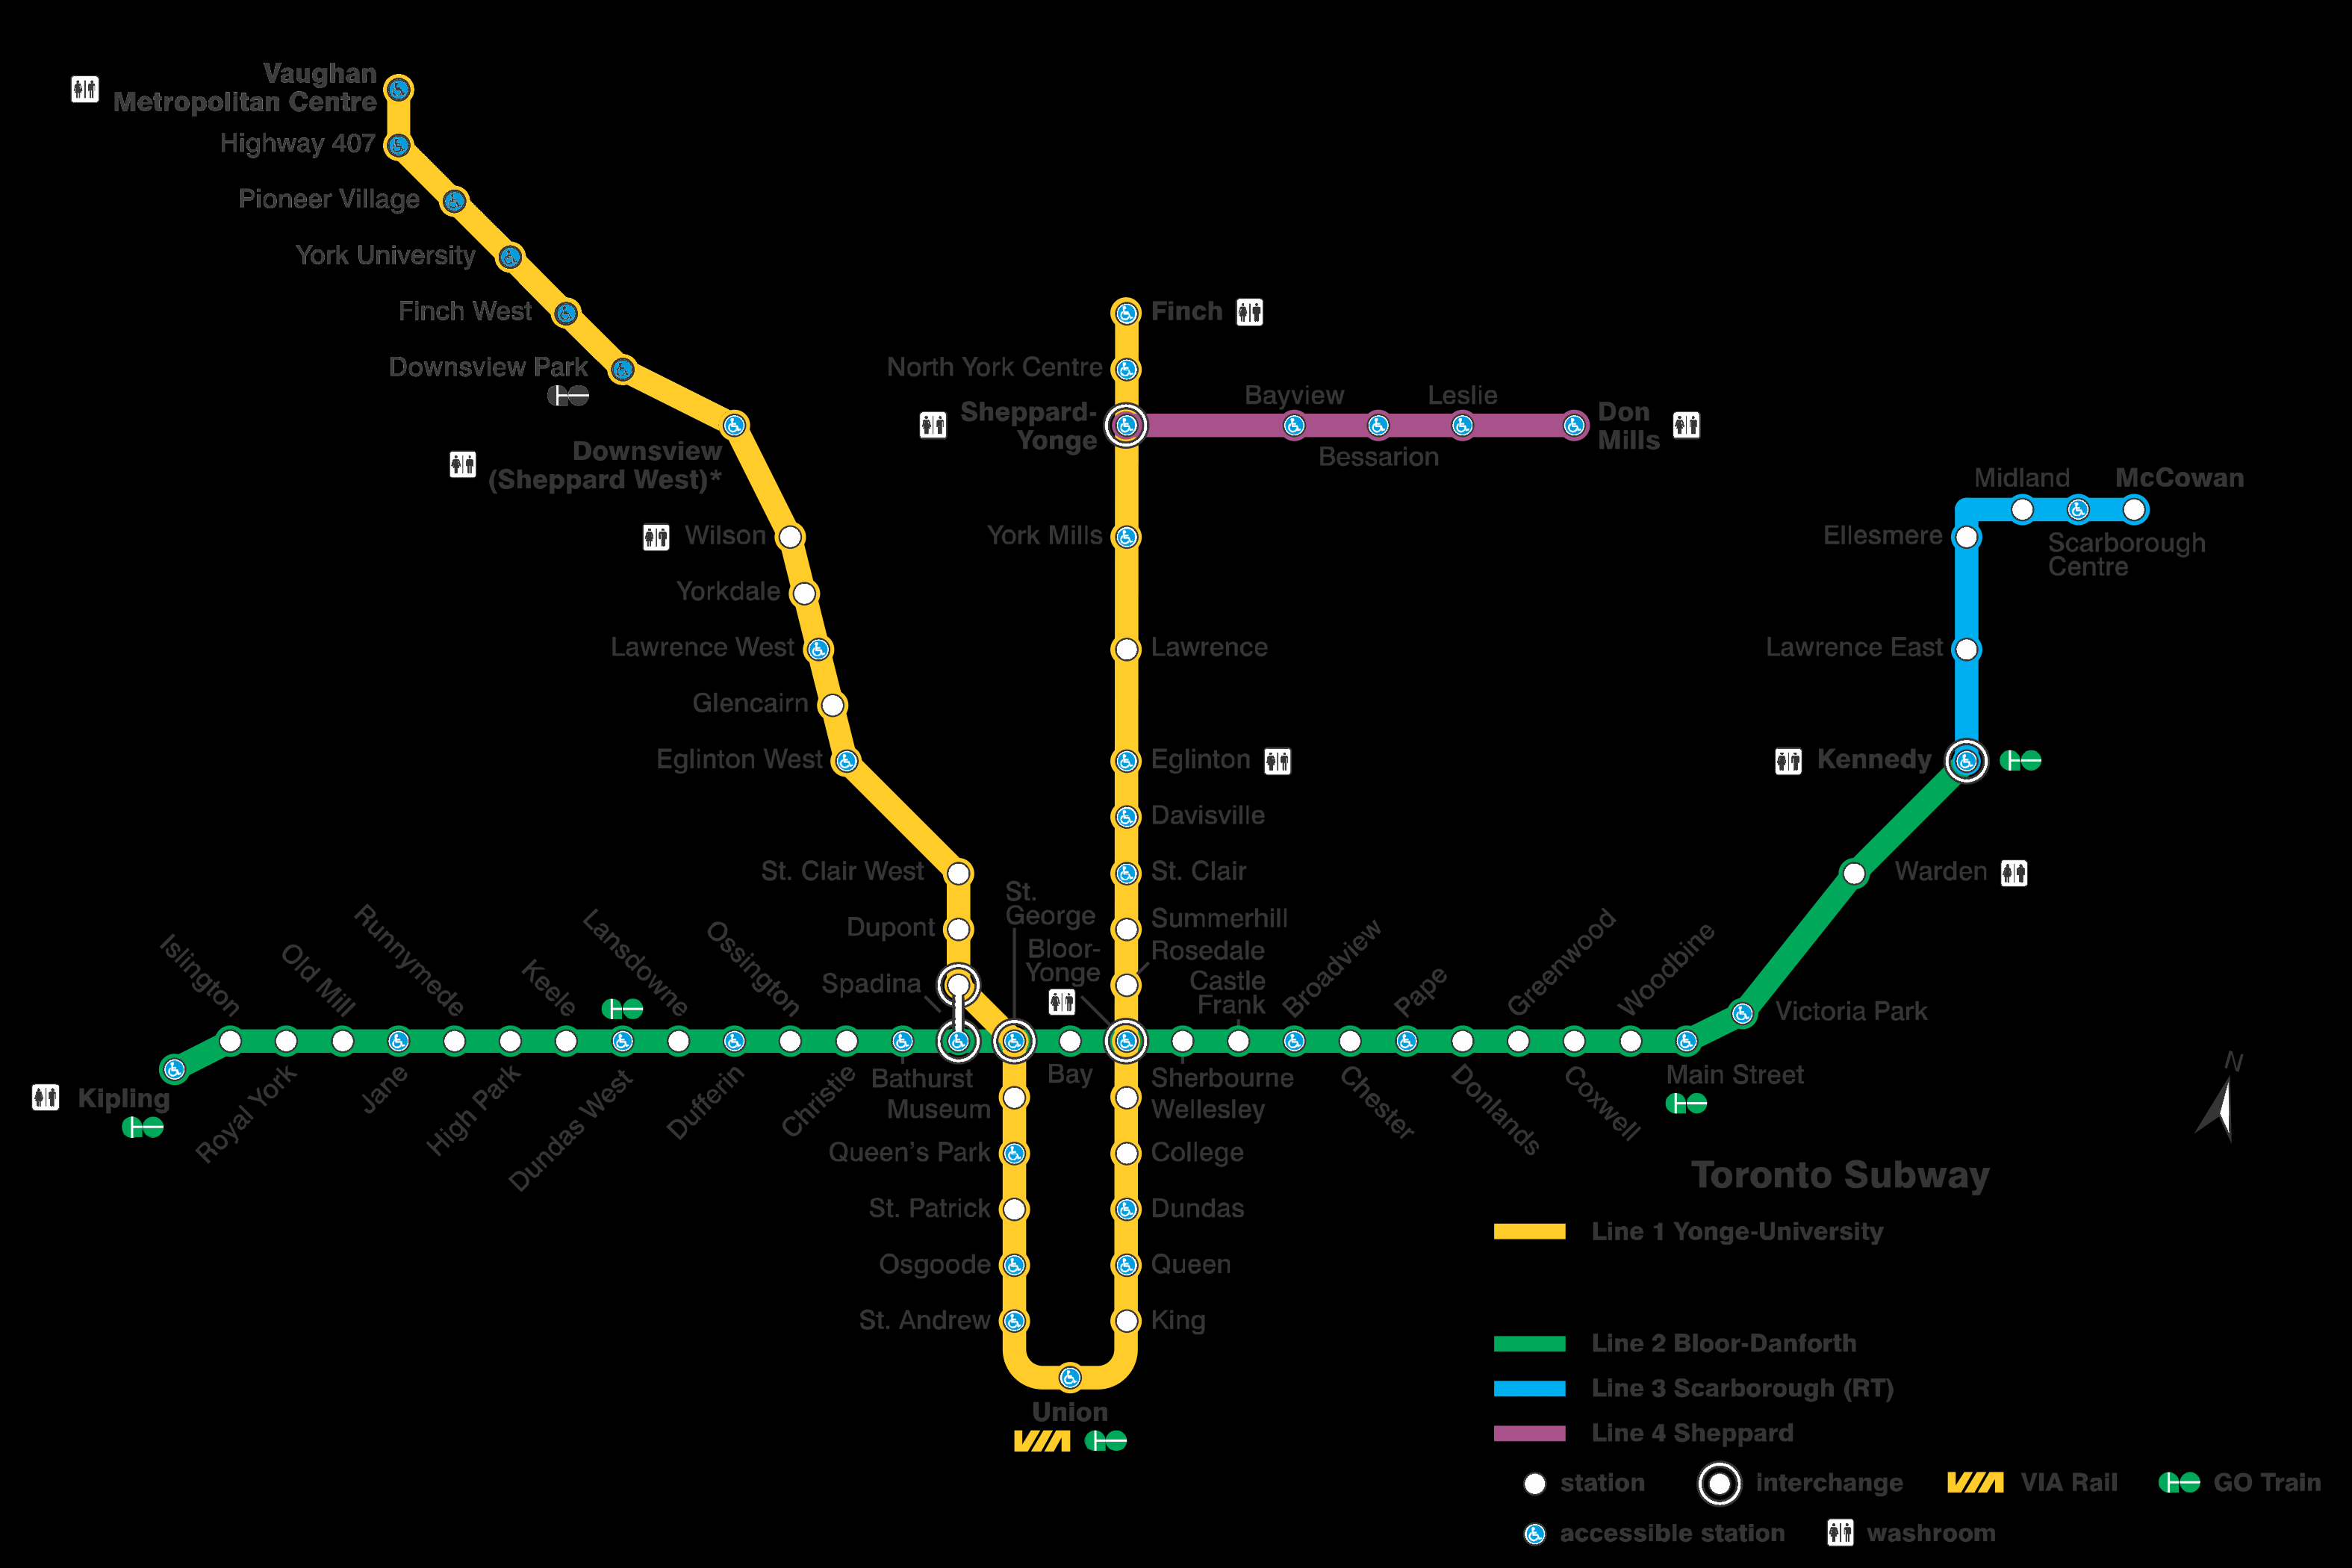 Toronto Subway Stations Map.Toronto Subway System Info Interactive Ttc Subway Map